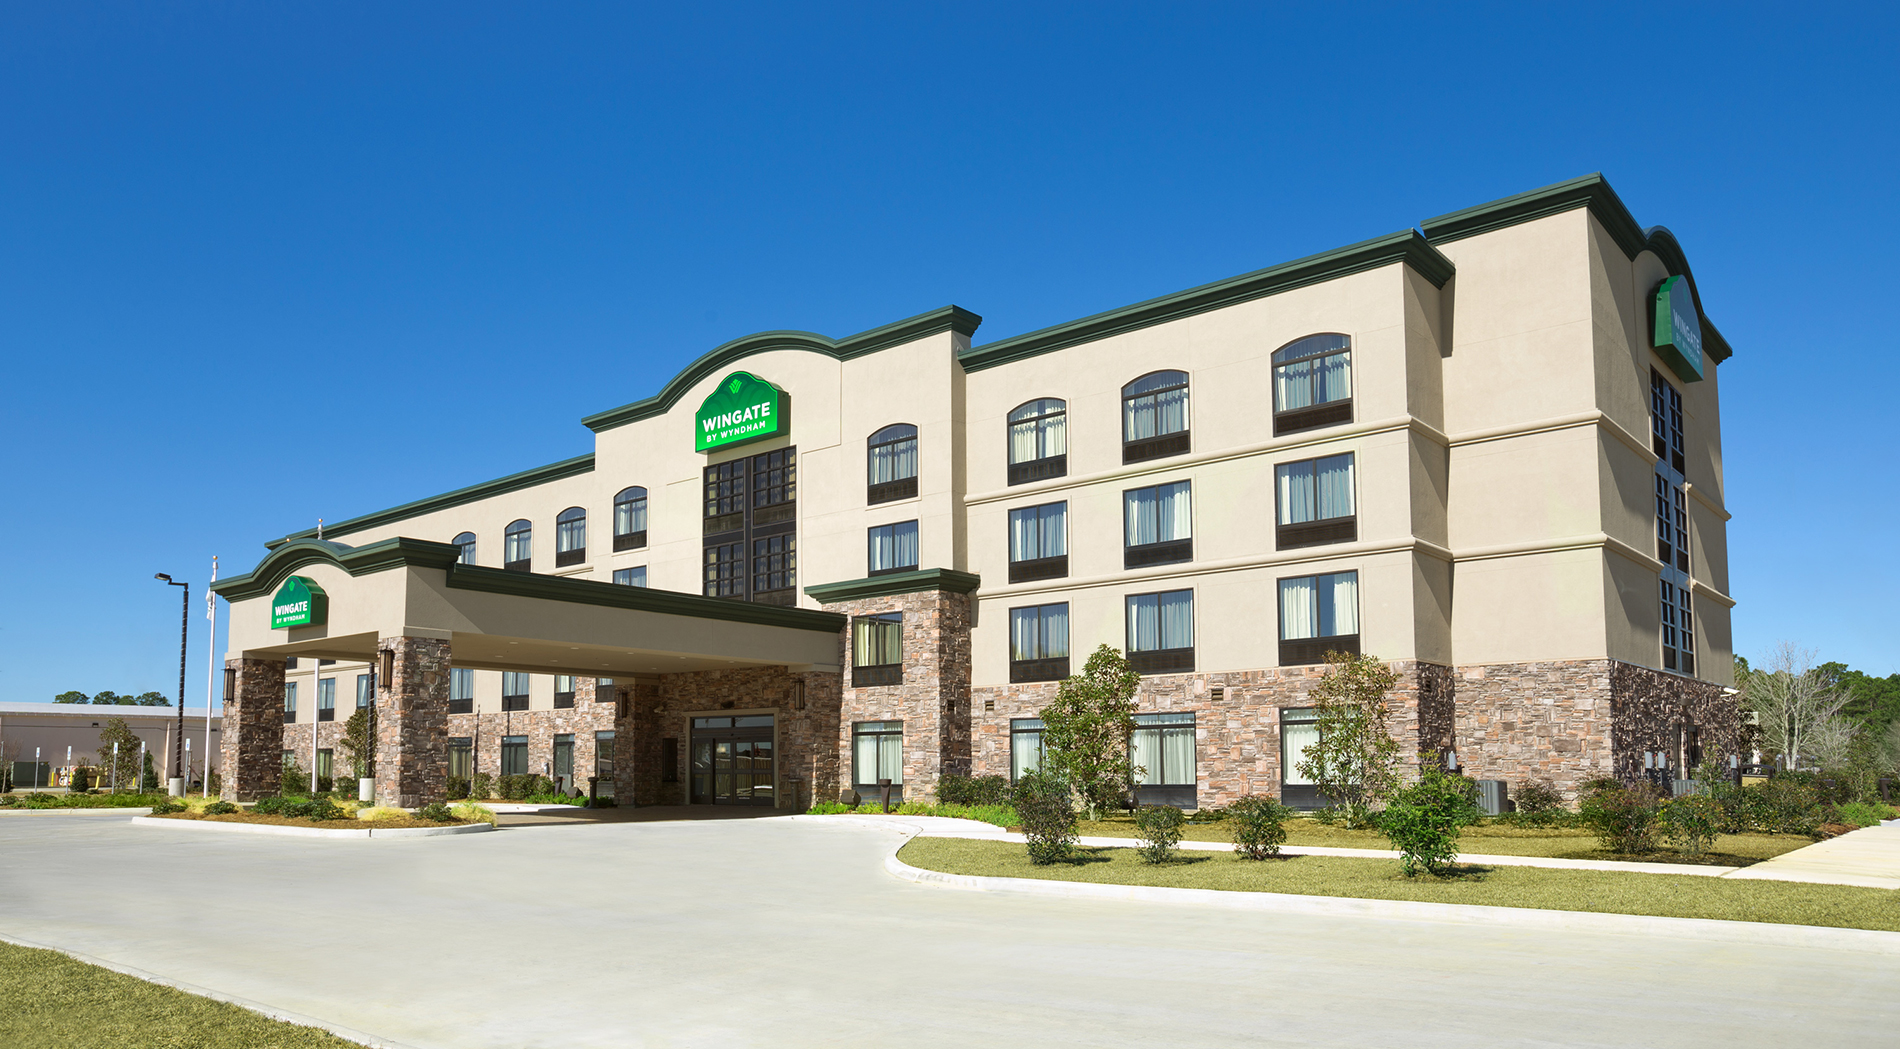 Hmc assumes management of wingate inn in slidell la for The wingate